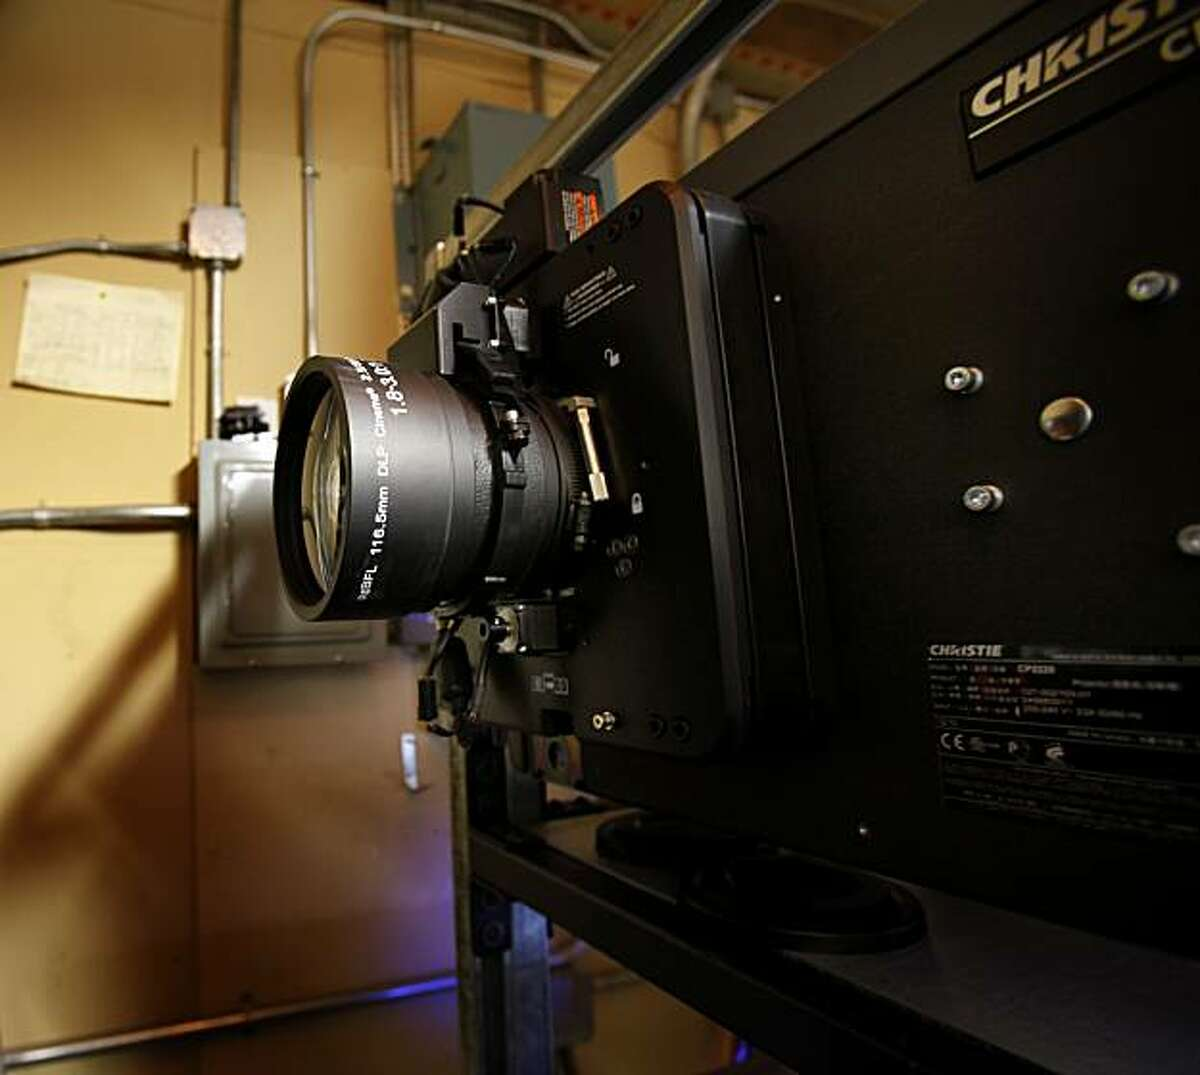 The new projectors for 3D films give the Grand Lake viewers a state-of-the-art film experience. The Grand Lake theatre in Oakland, Calif. is the last theatre run by Allen Michaan, who used to have more than a dozen theatres in the Bay Area.